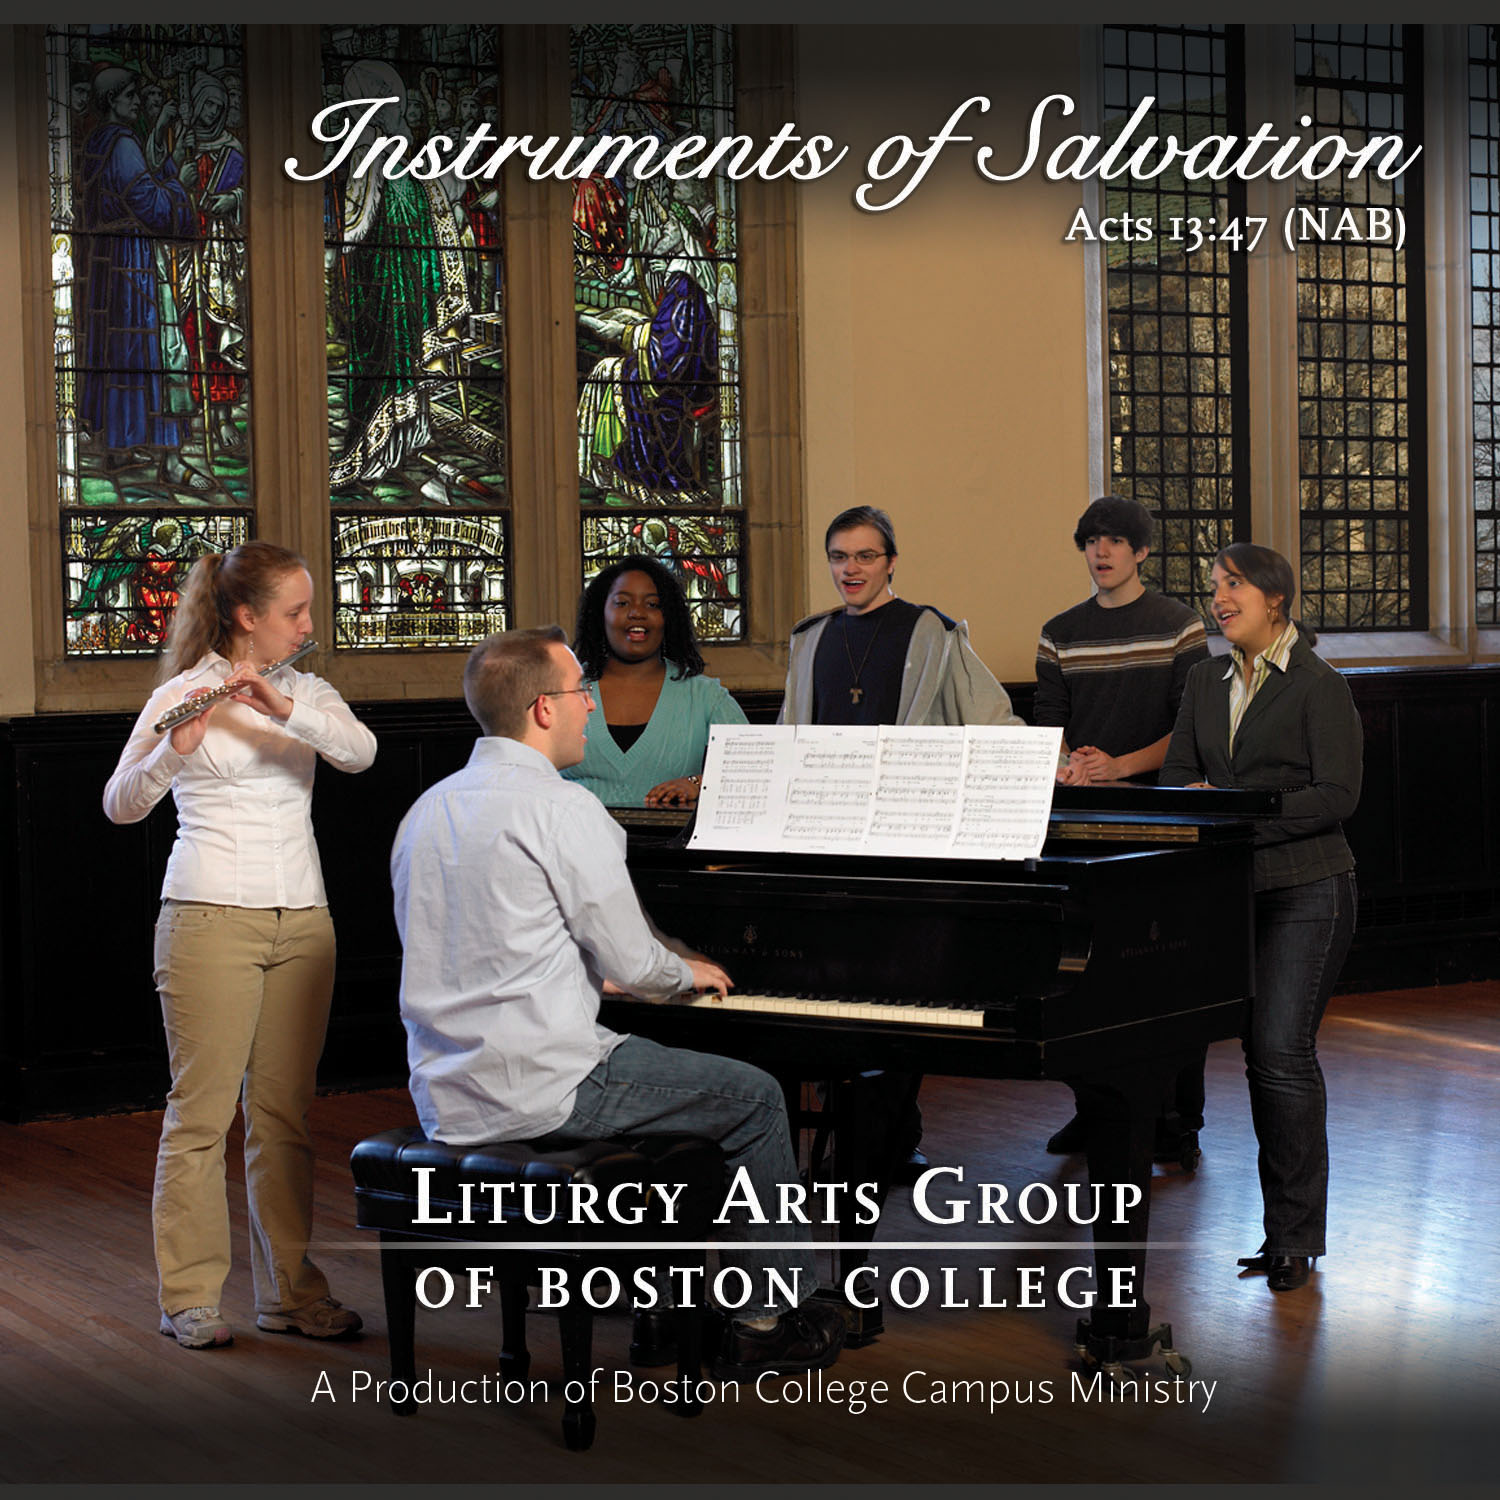 Liturgy Arts Group of Boston College